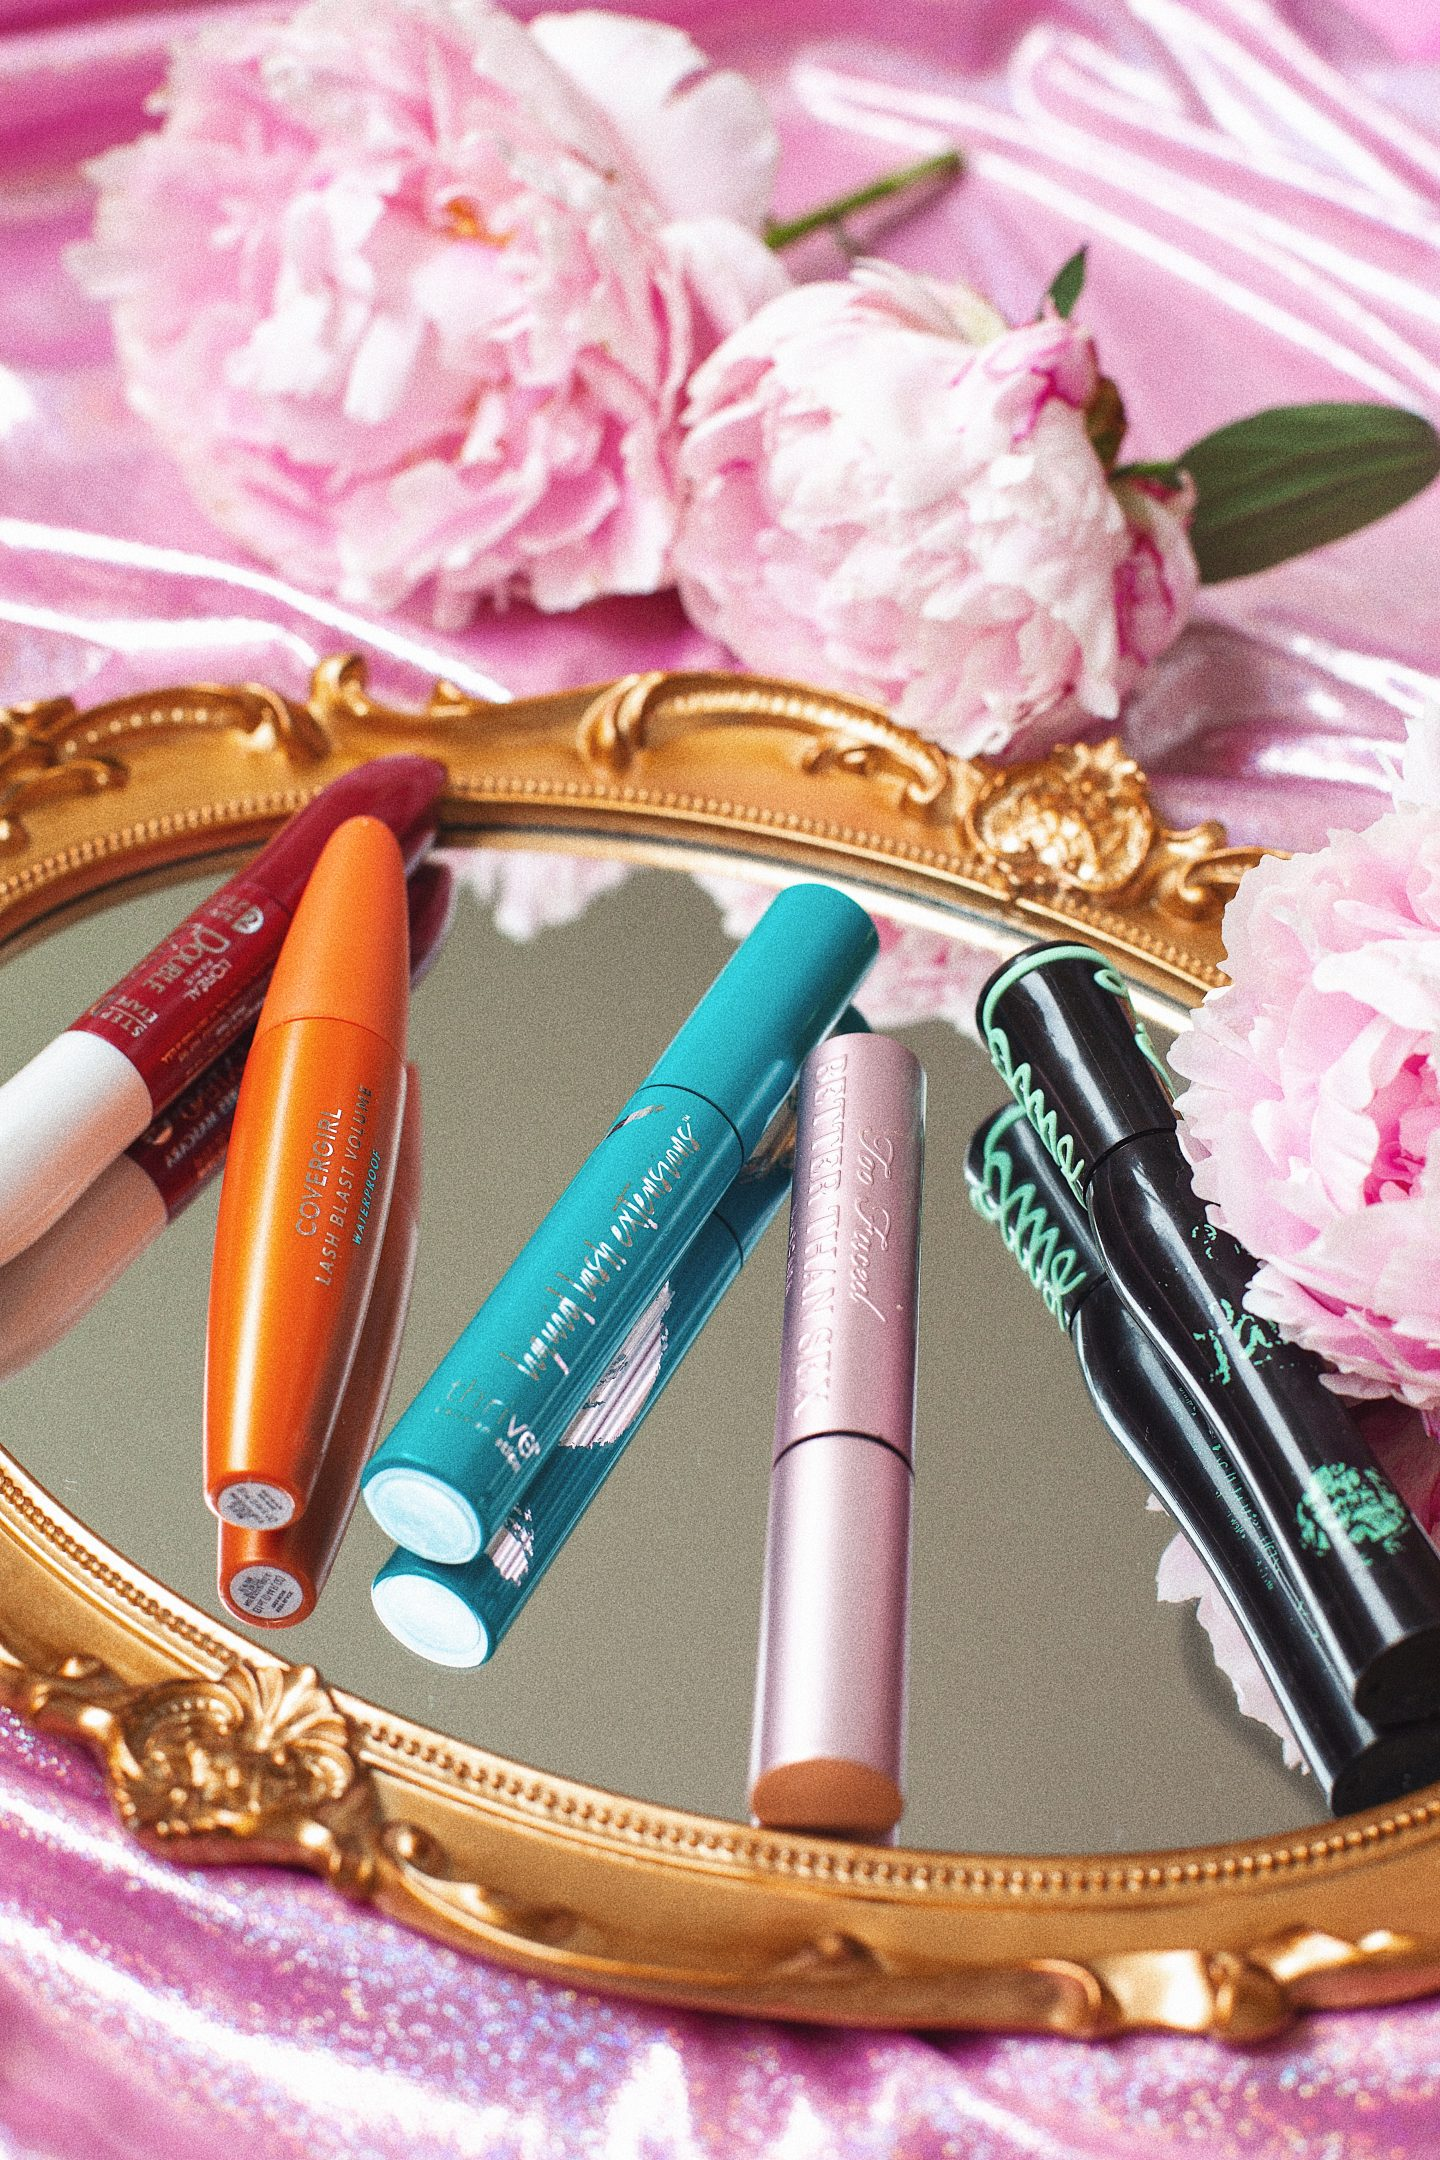 Top 5 Mascara Recommendations